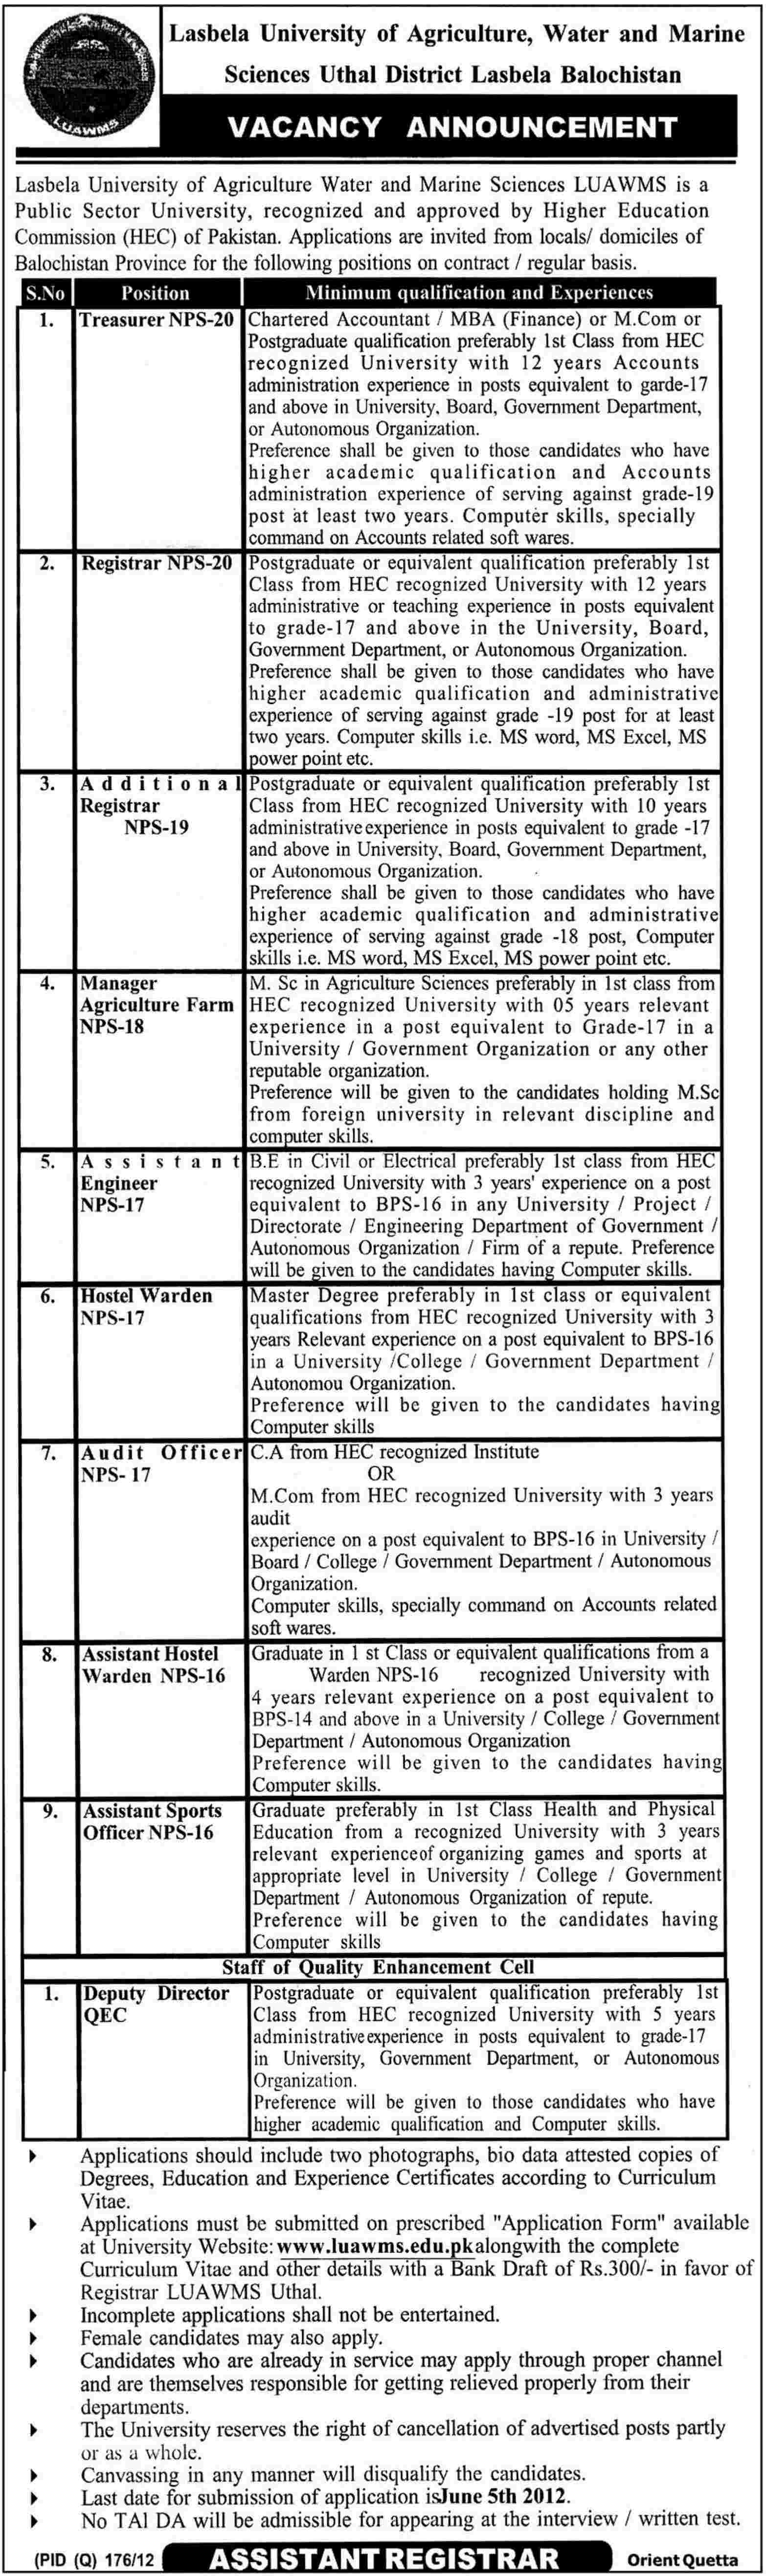 Administrative Jobs at Lasbela University of Agriculture, Water and Marine Sciences